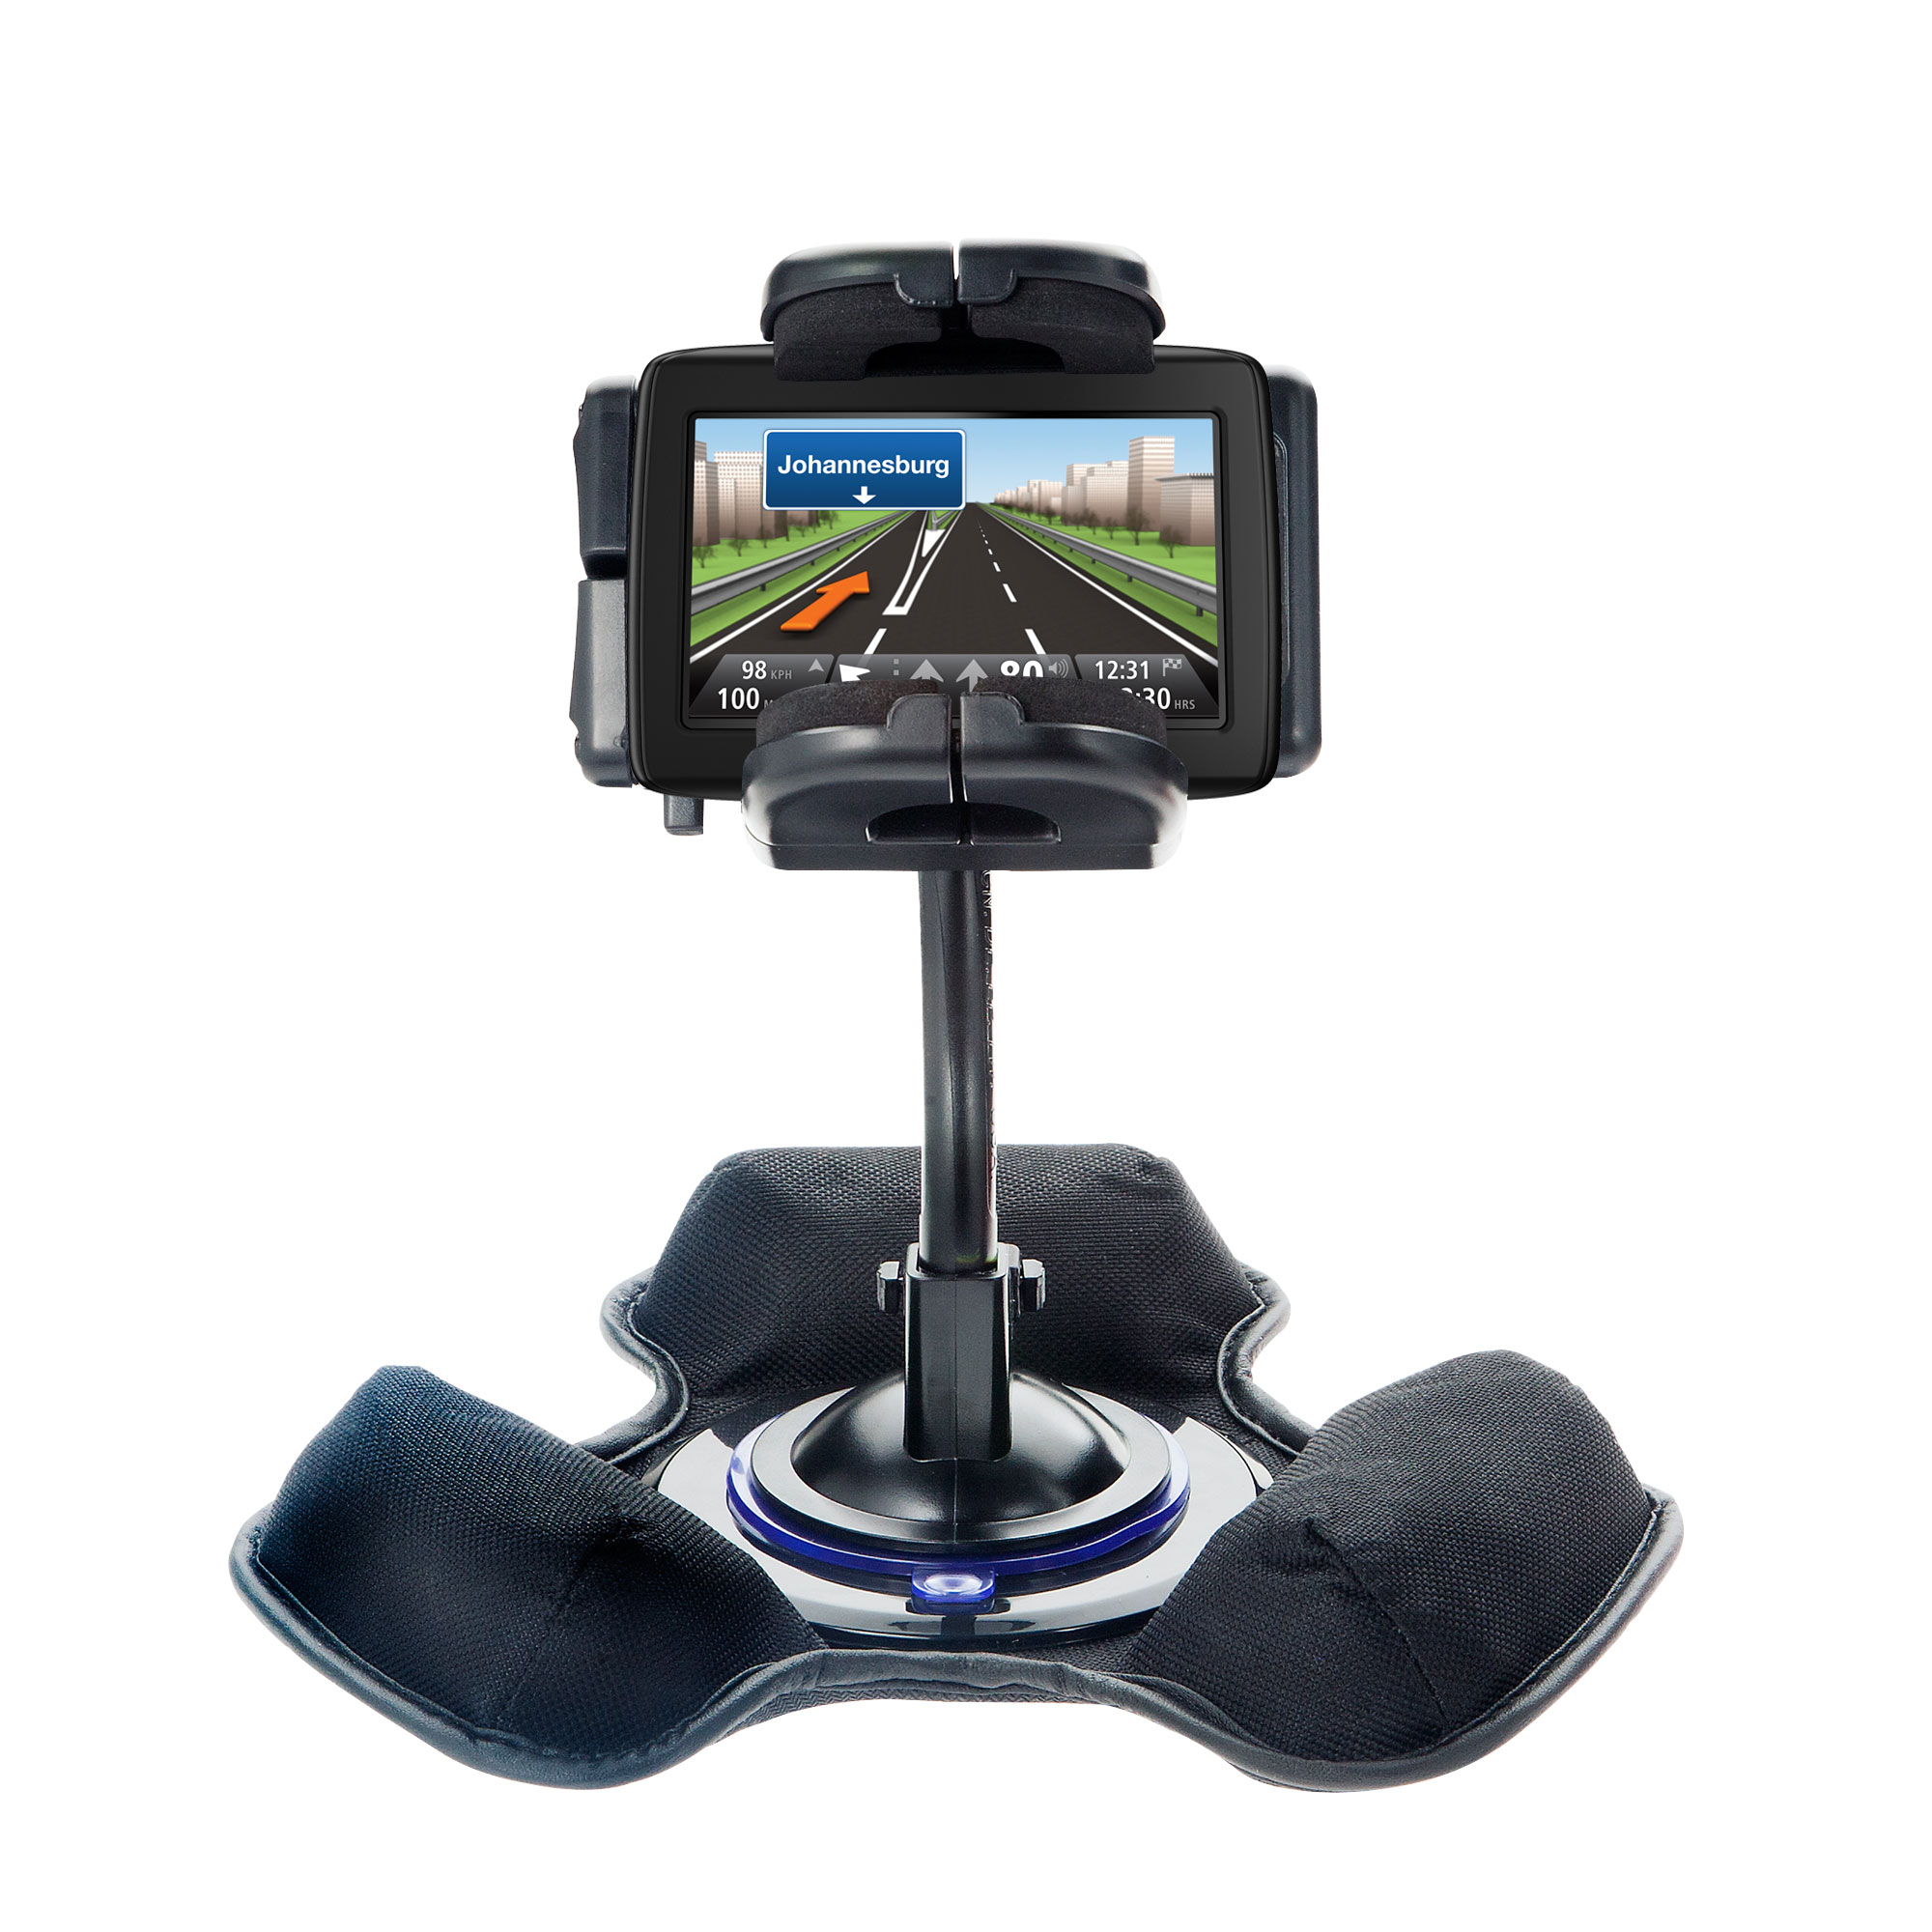 Dash and Windshield Holder compatible with the TomTom VIA 1500